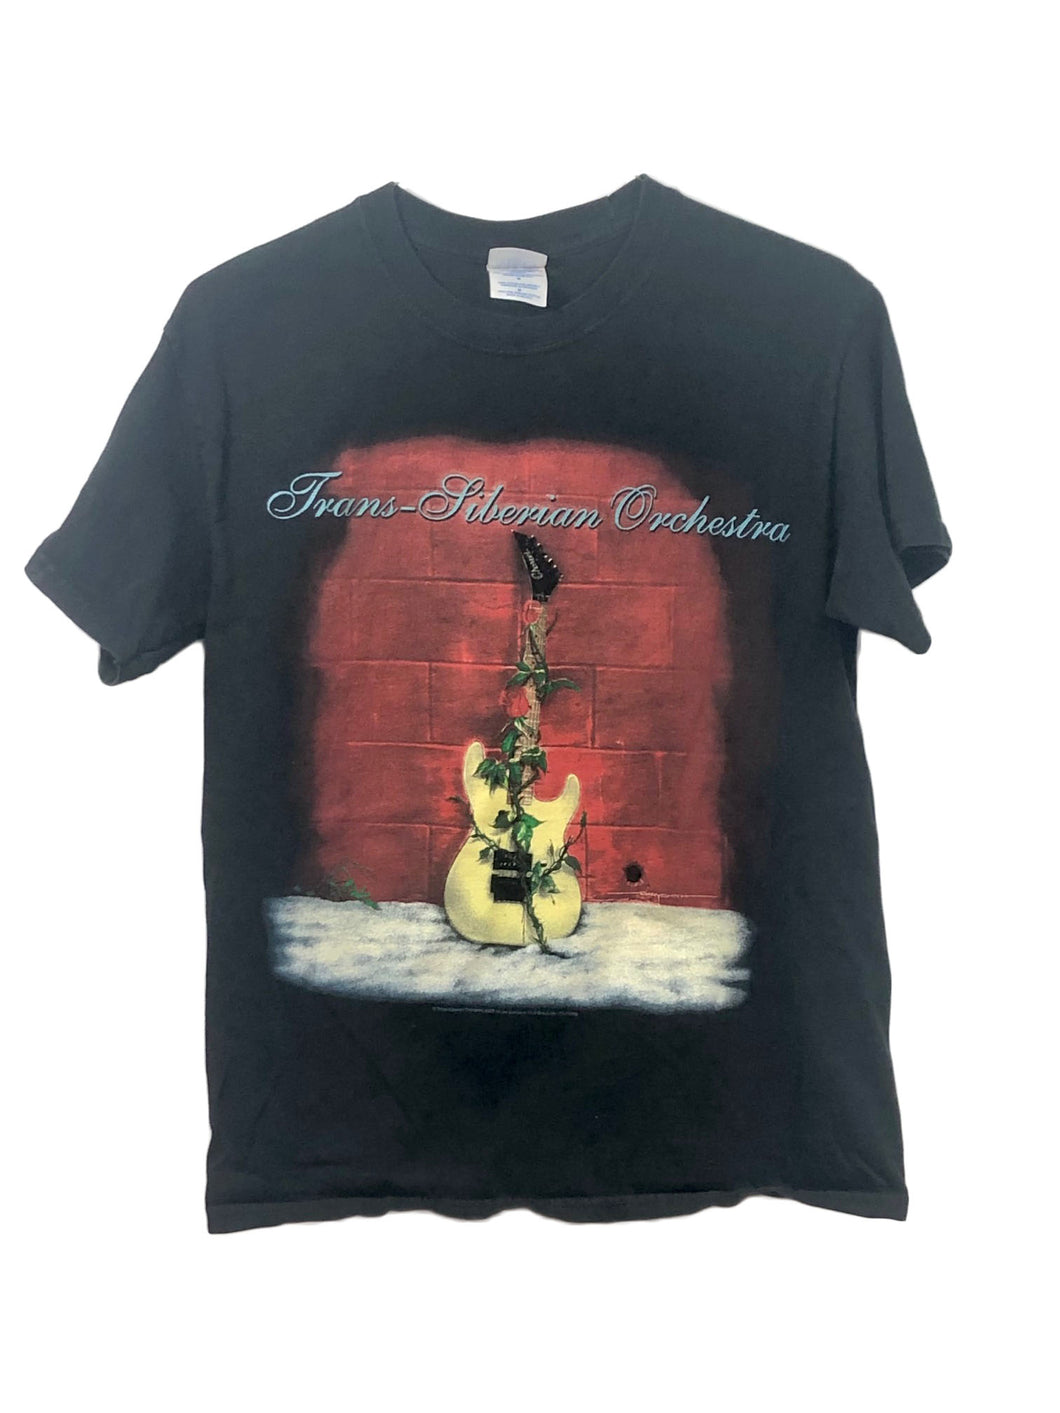 Trans Siberian Orchestra Tour tee